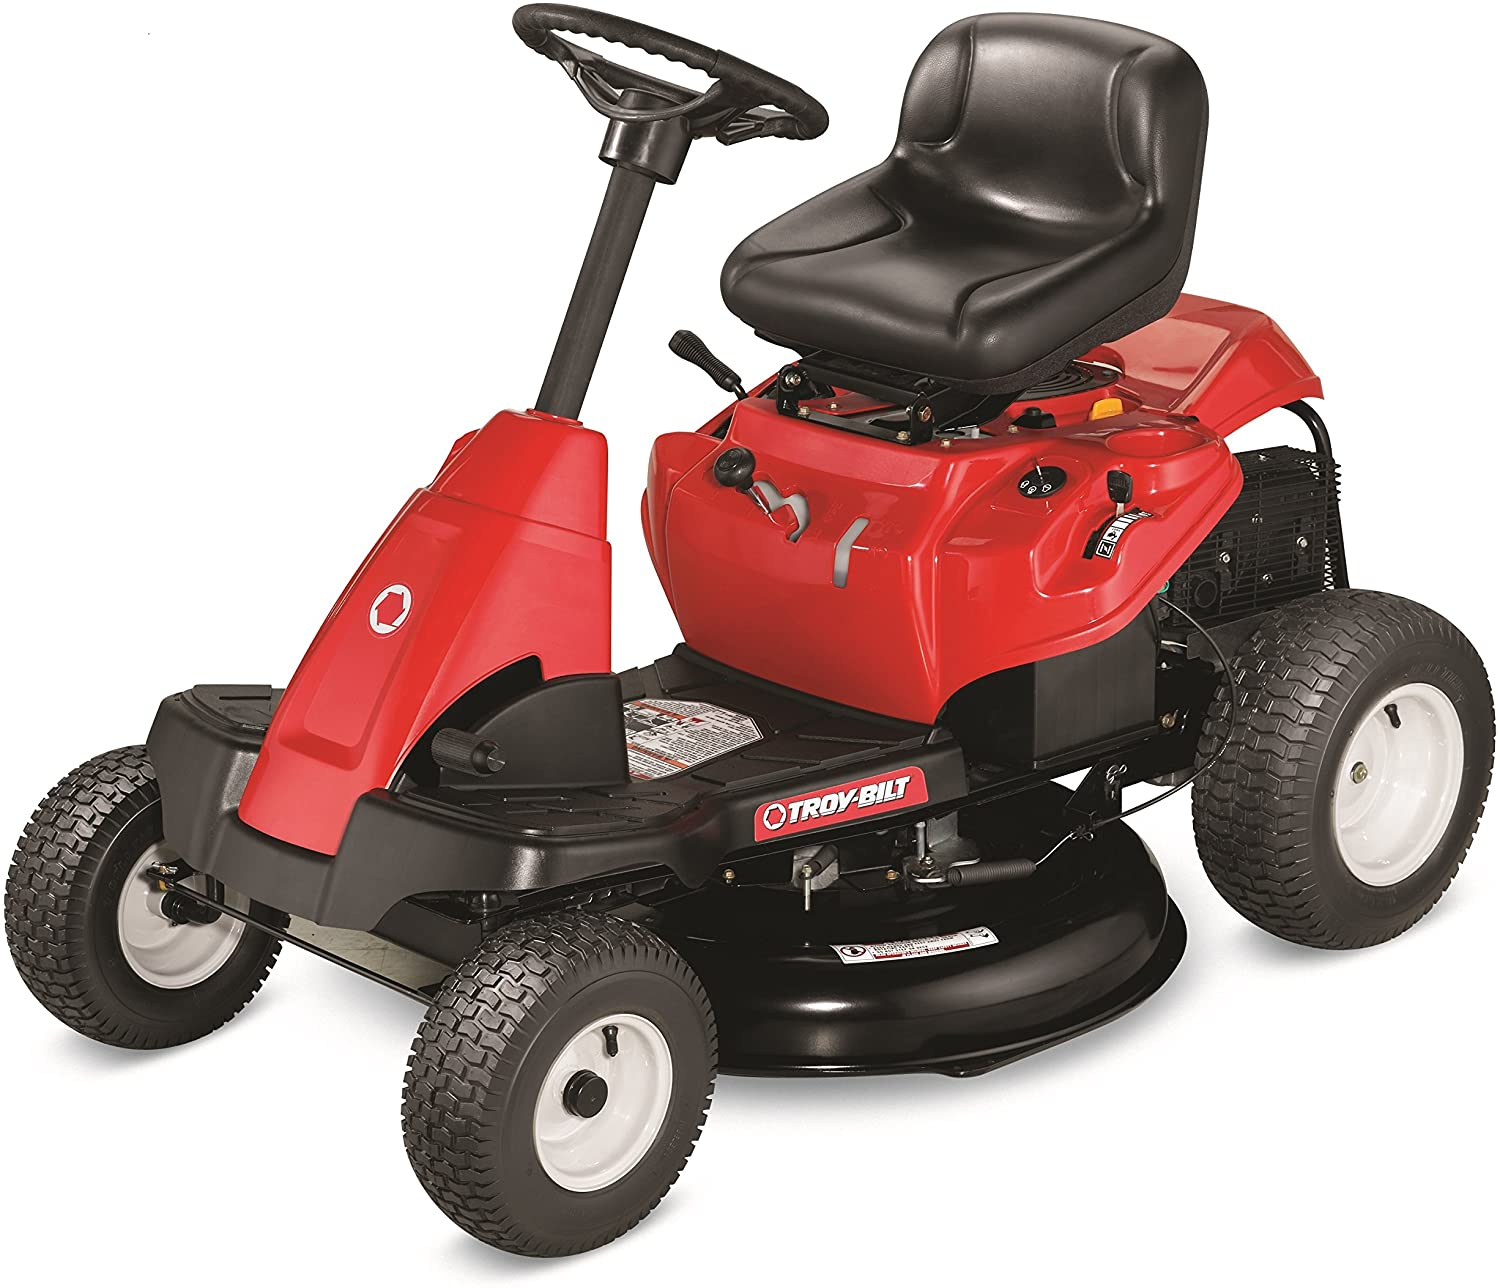 """Troy-Bilt 382cc 30-Inch Premium  Neighborhood Riding Lawn Mower """